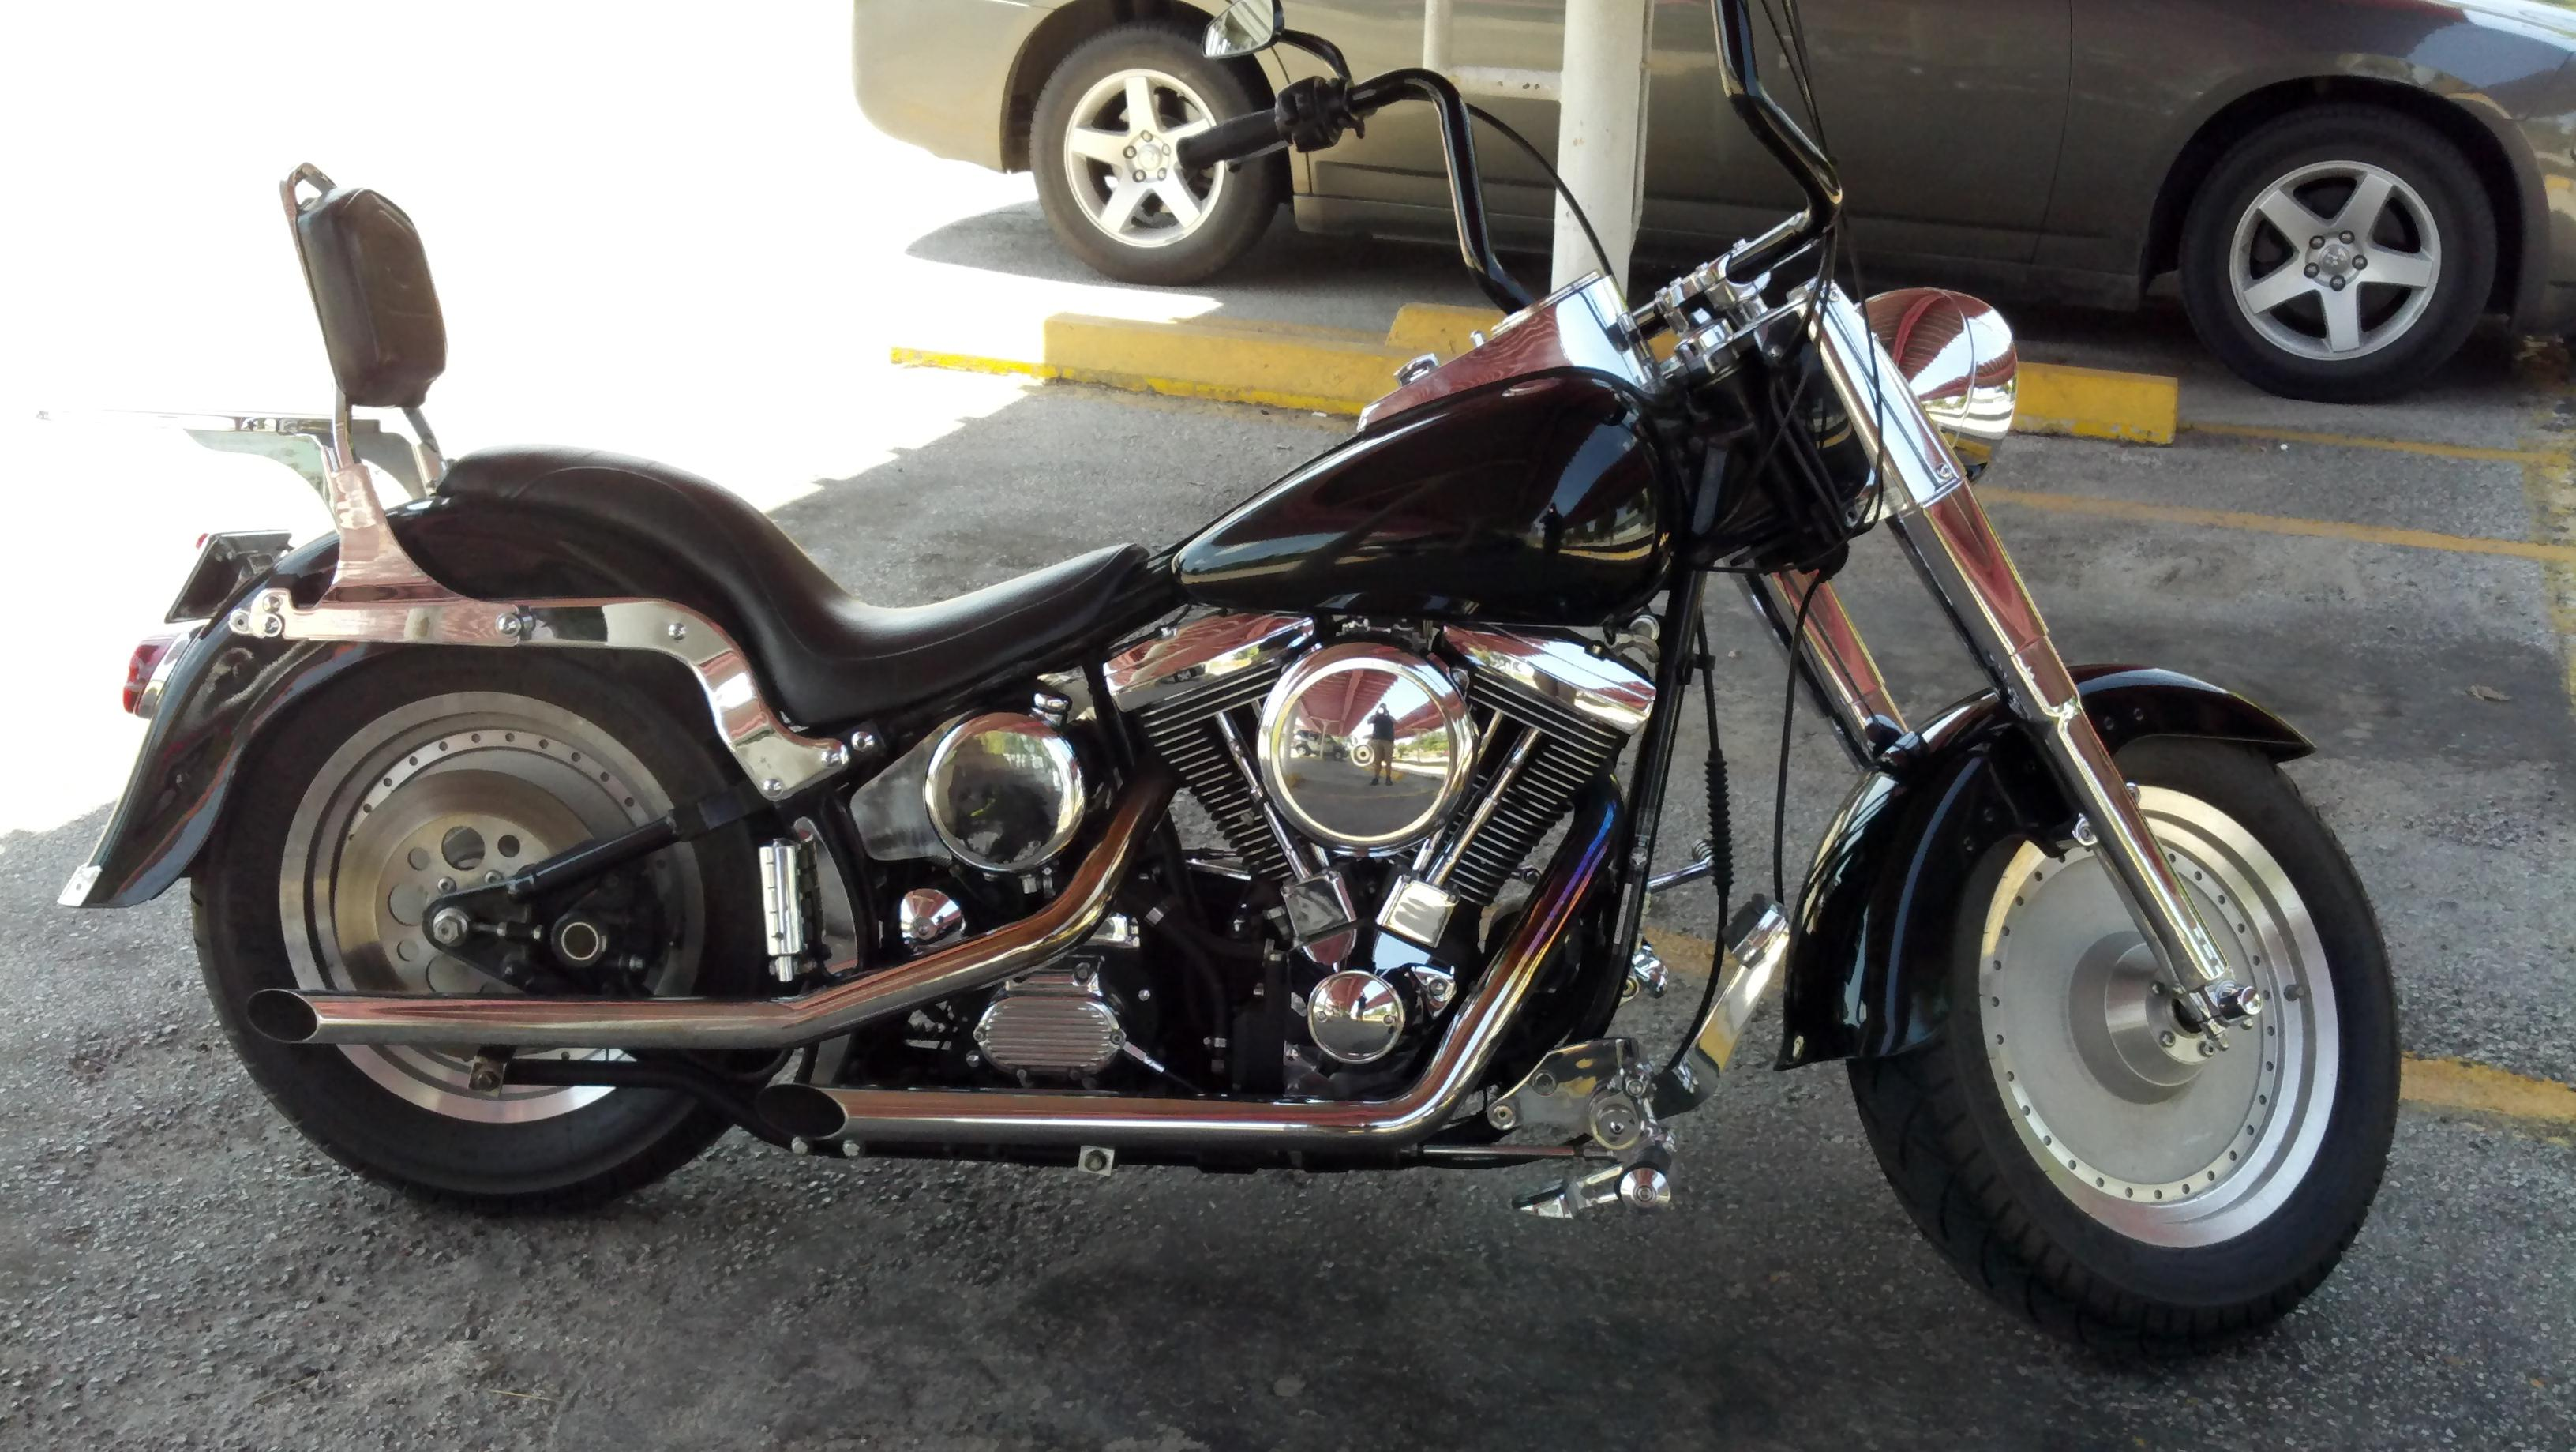 so-i-bought-harley-2012-08-24_14-21-17_836.jpg